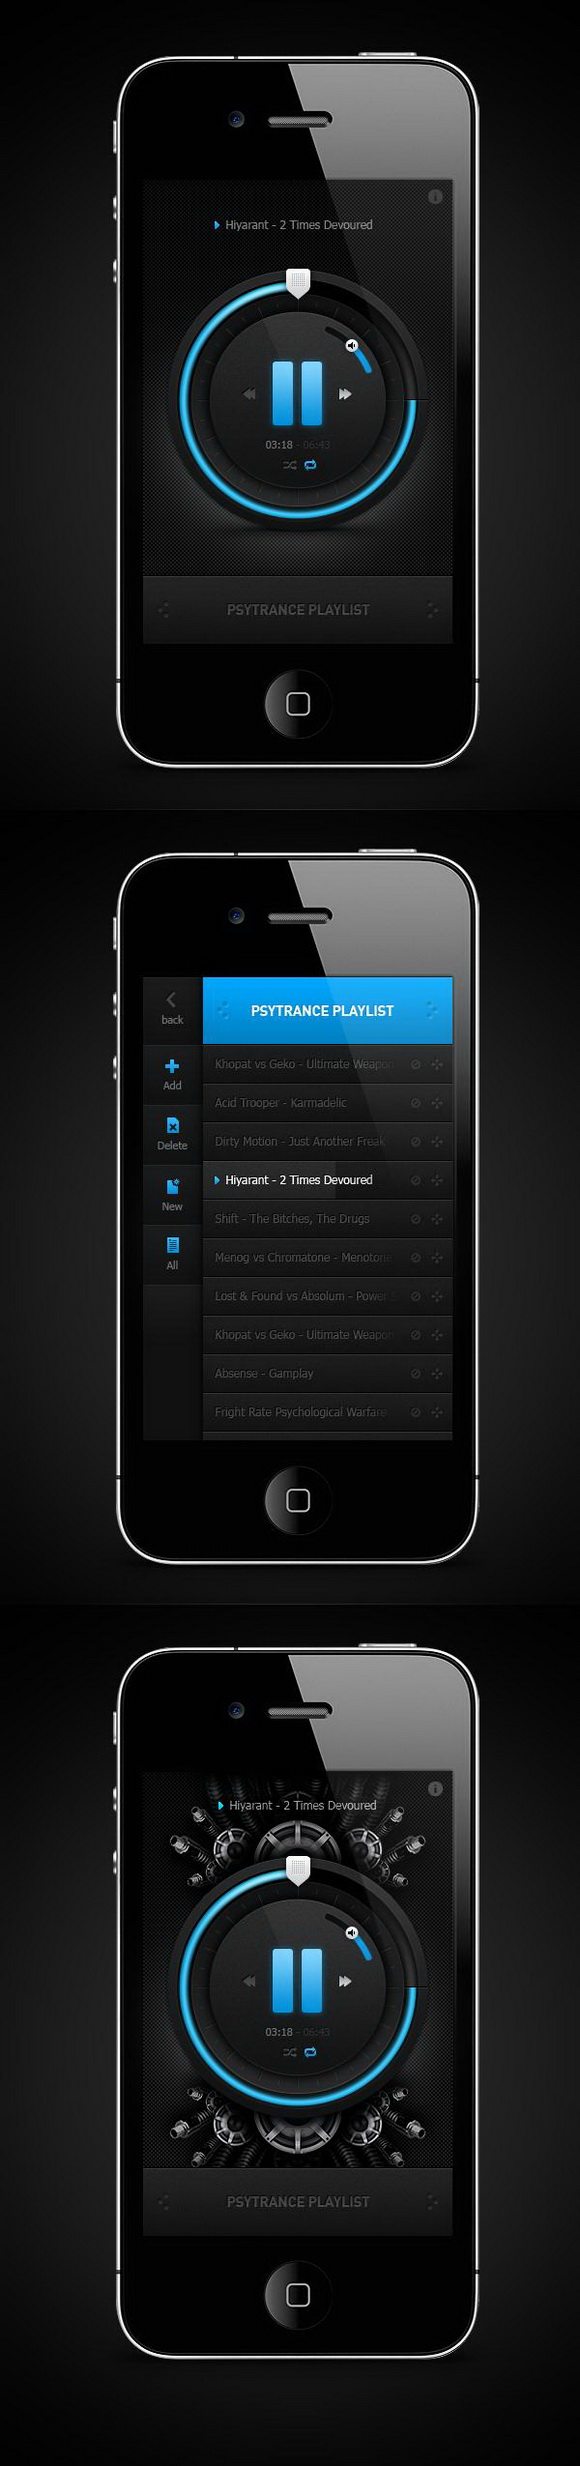 iphone-music-player